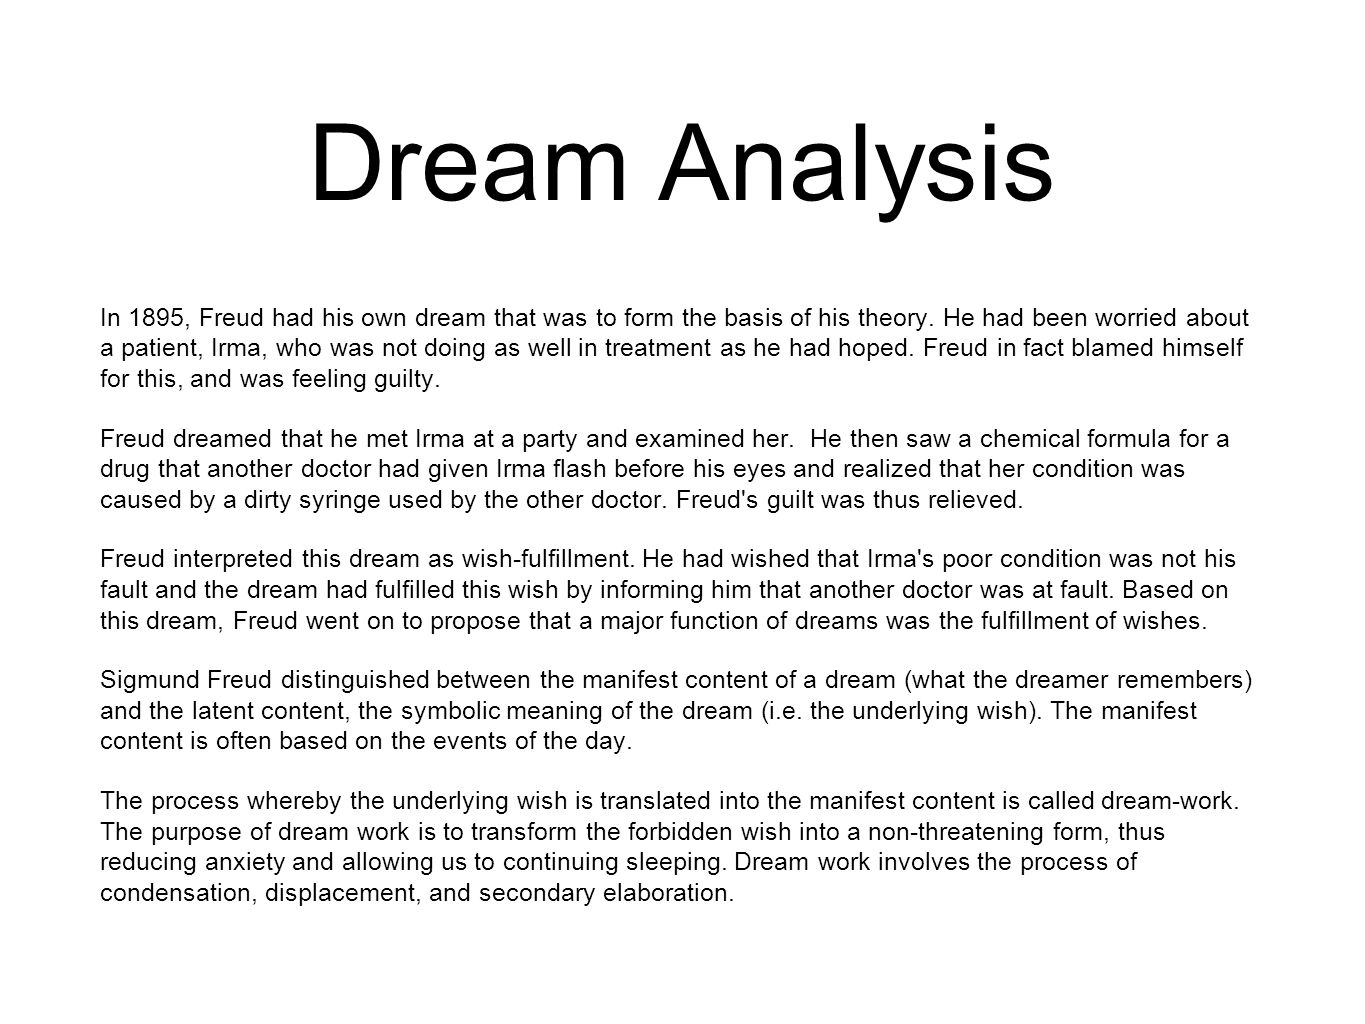 016 Research Paper Dreamanalysis Psychology Topics On Rare Dreams Papers Full